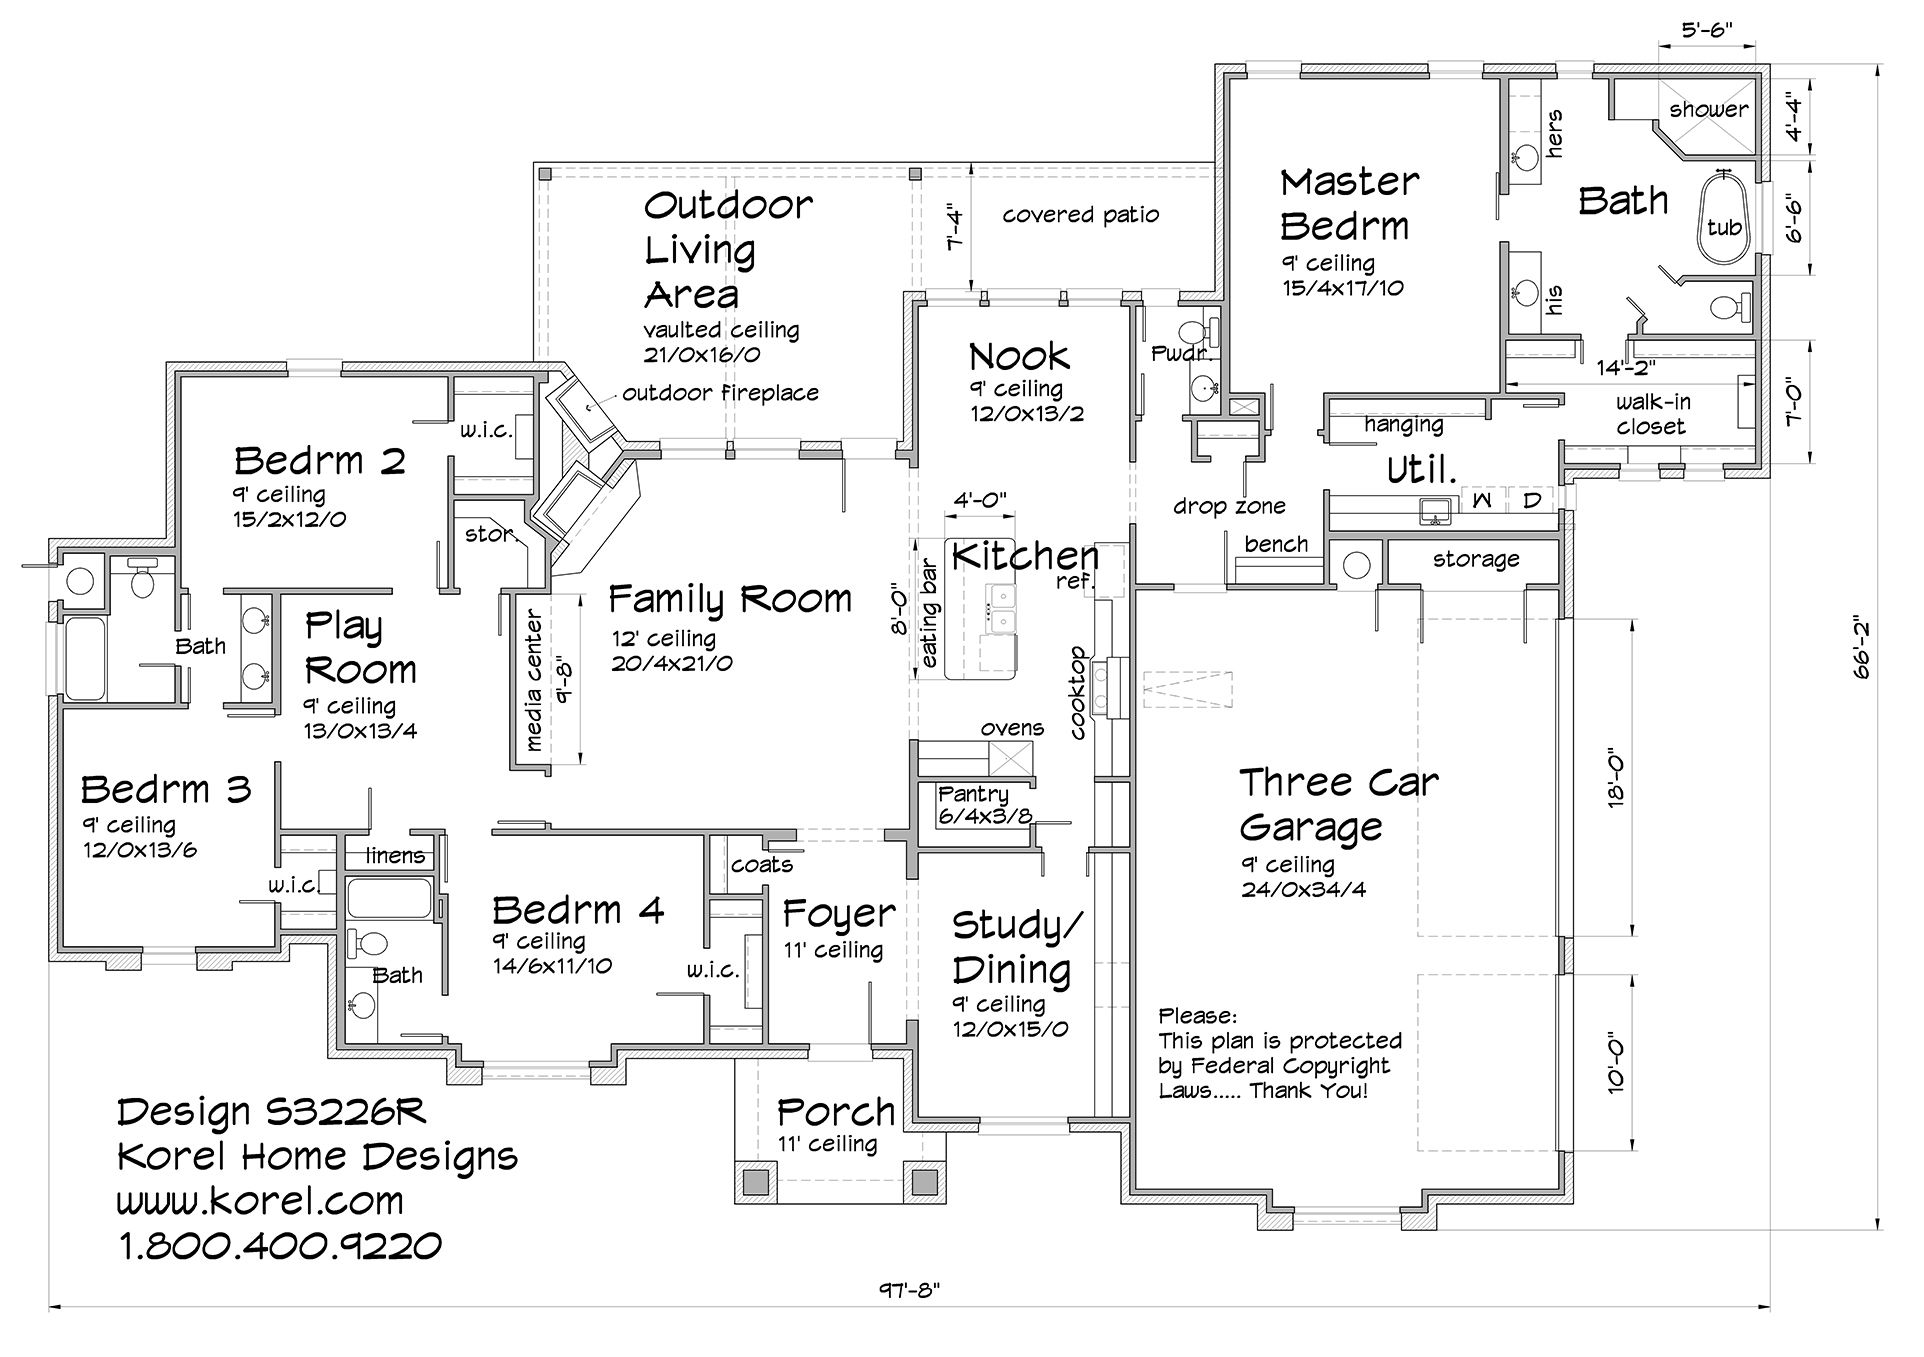 S3226r Texas House Plans Over 700 Proven Home Designs Online By Korel Home Designs House Floor Plans House Plans Floor Plans